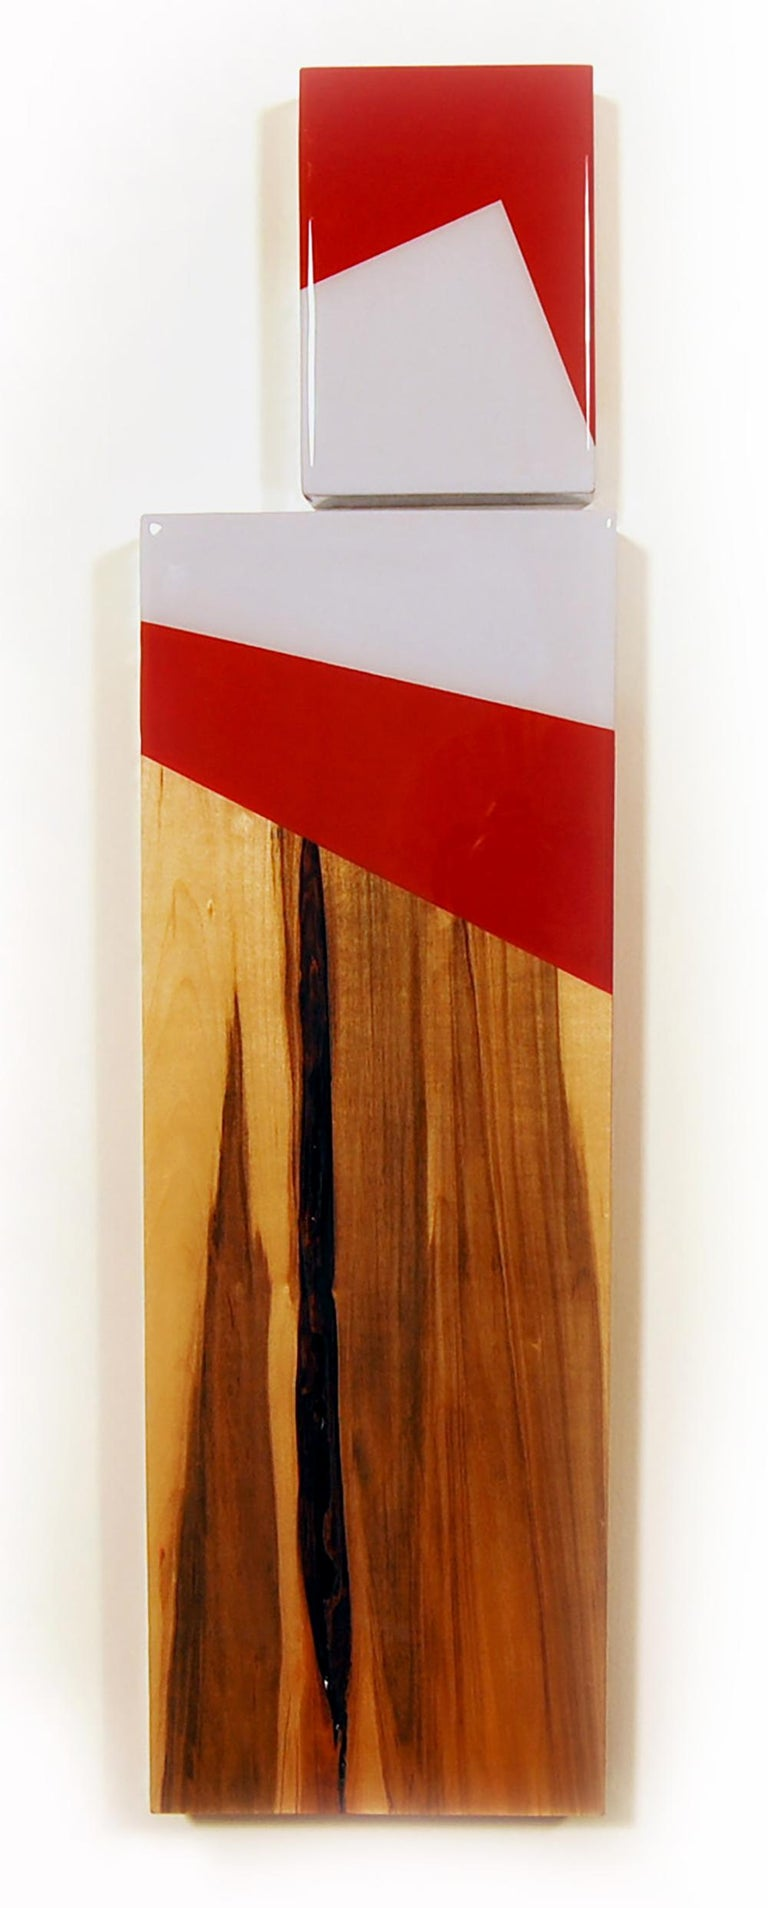 Puzzle 97, David E. Peterson, Contemporary Colorful Wooden Wall Sculpture - Mixed Media Art by David E. Peterson